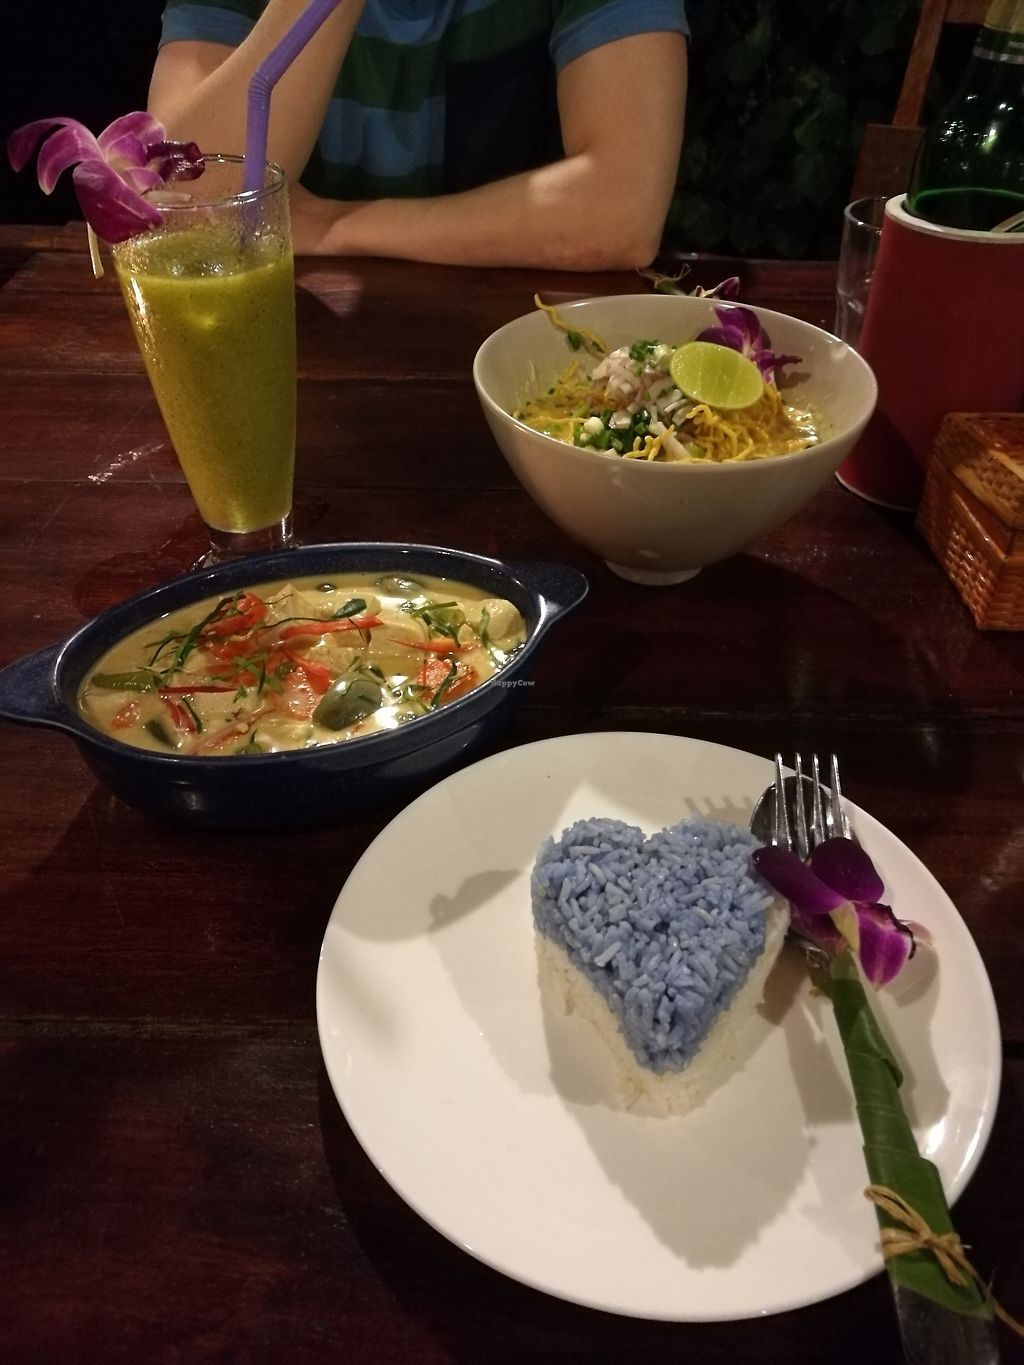 """Photo of Blue Lagoon  by <a href=""""/members/profile/IlonaKotiranta"""">IlonaKotiranta</a> <br/>Panang curry and kao soy, both with tofu <br/> December 12, 2017  - <a href='/contact/abuse/image/89292/334927'>Report</a>"""